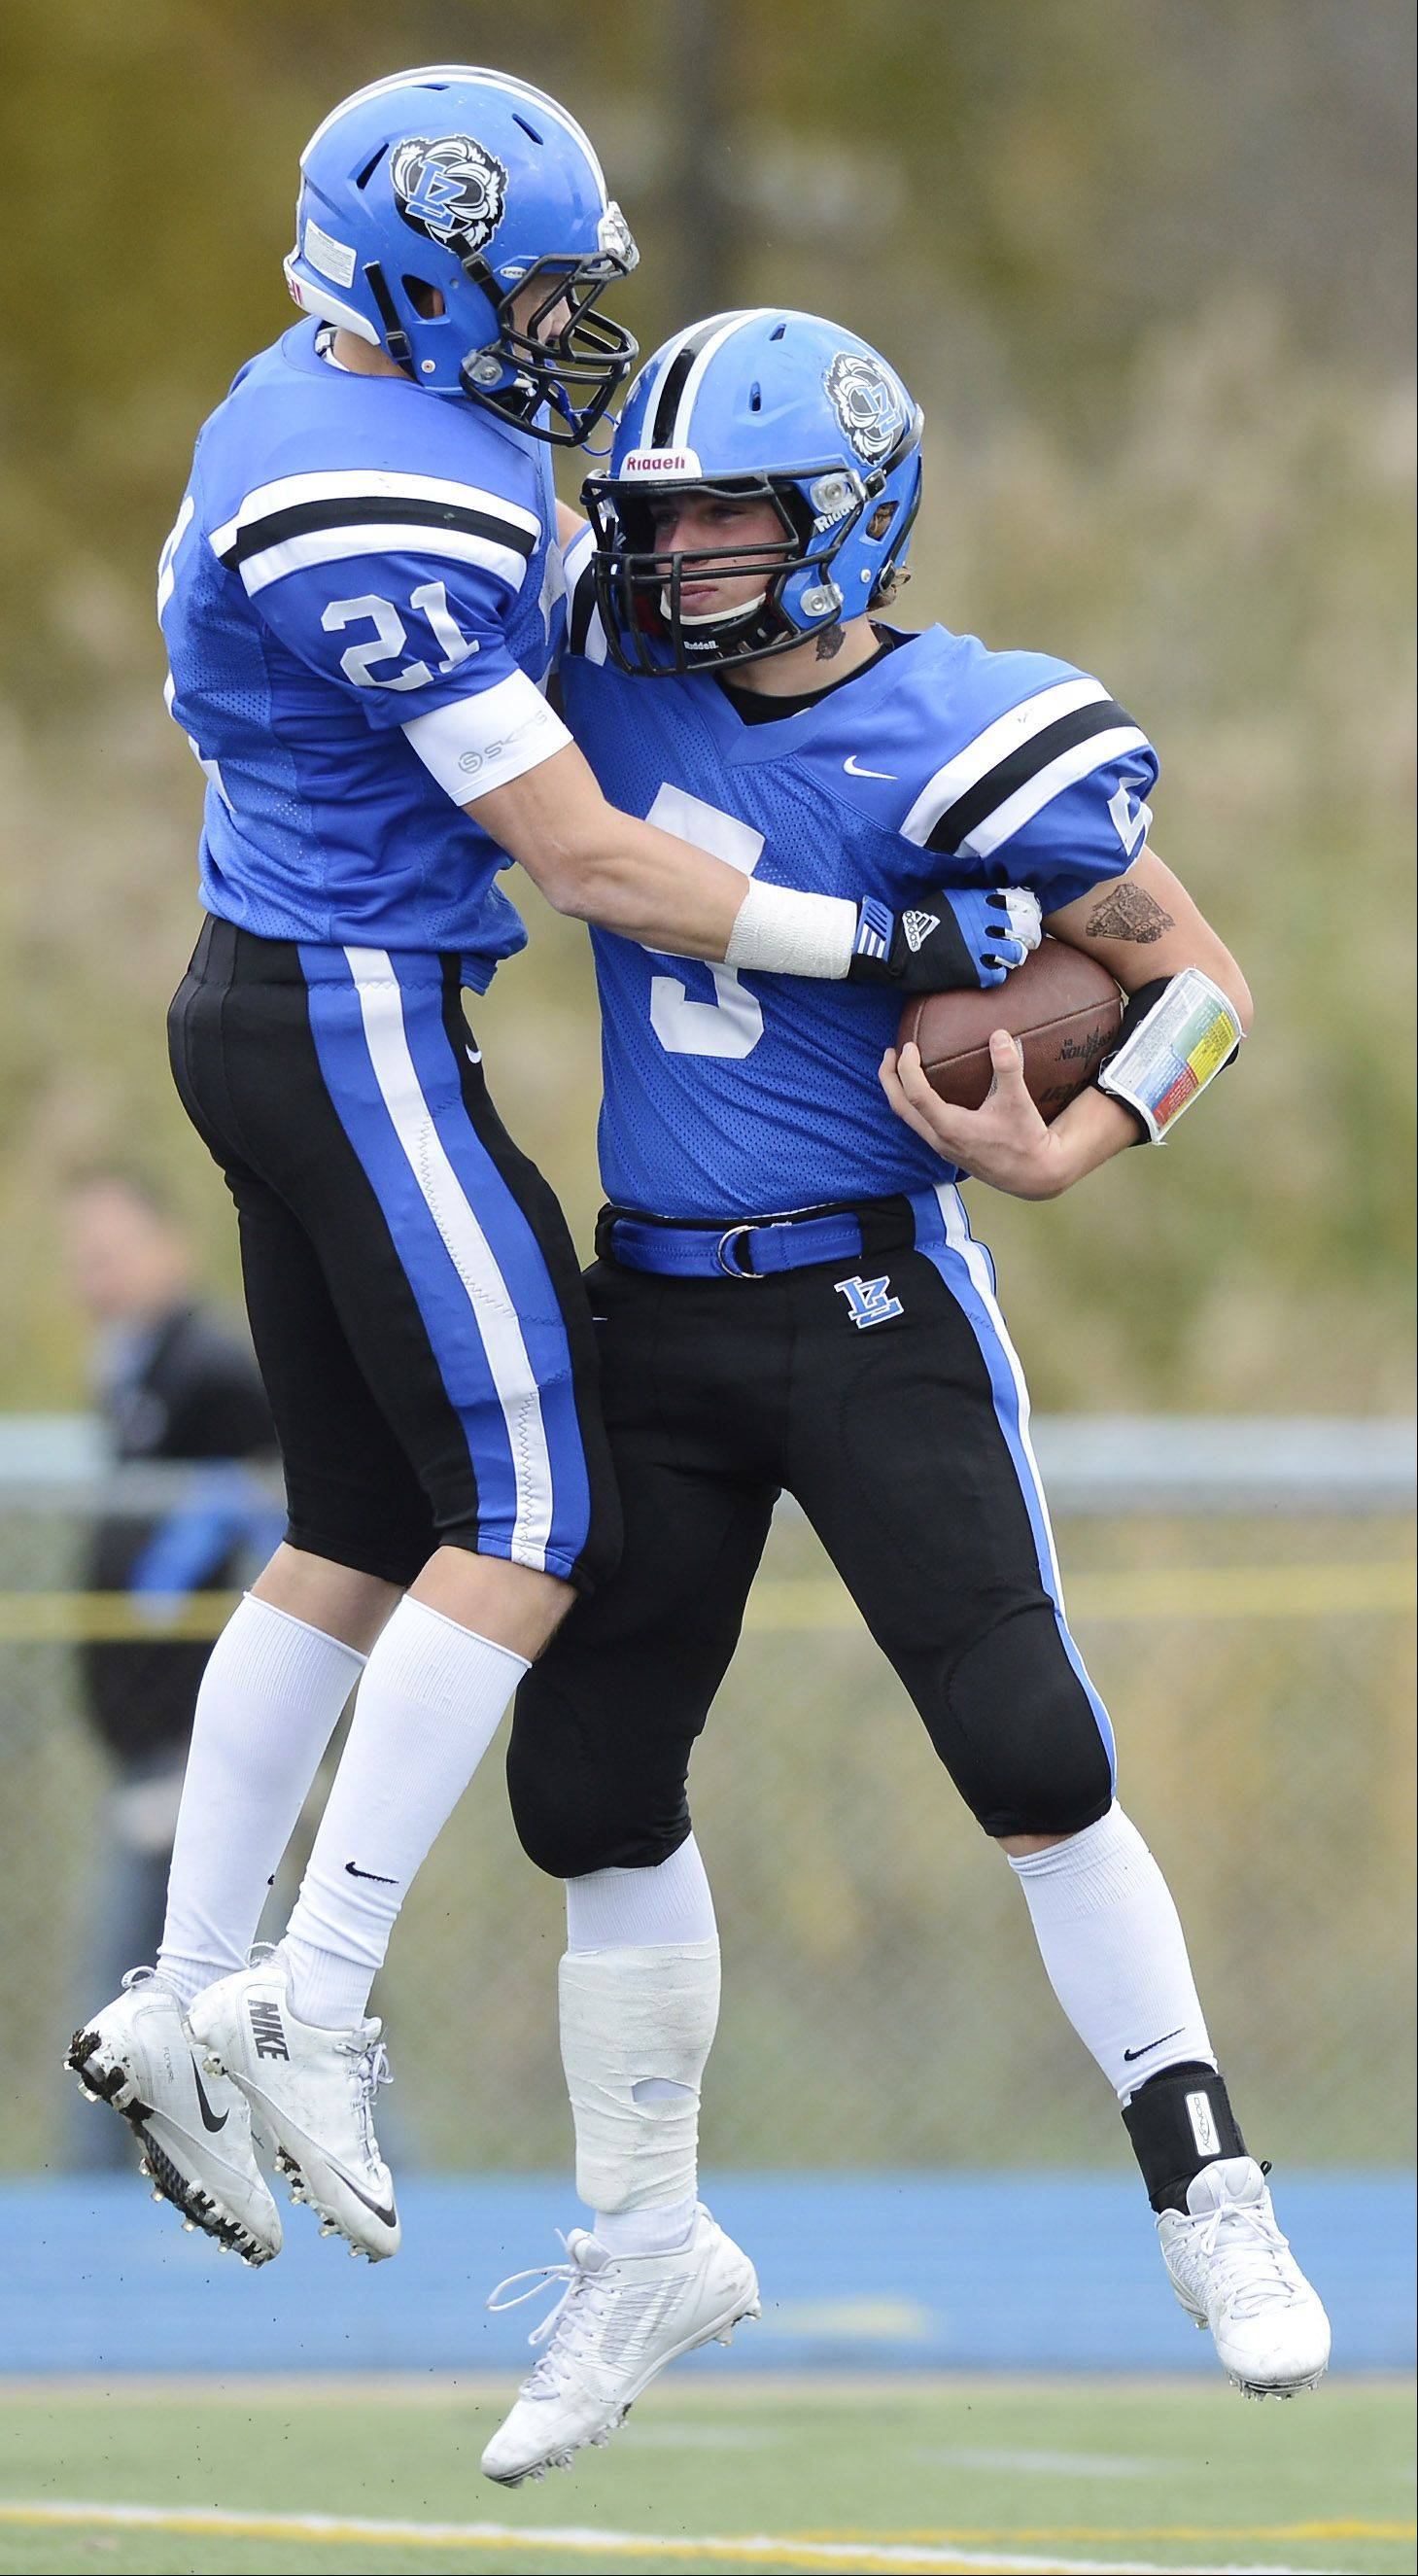 Lake Zurich's Sam Walstrum, right, celebrates his third-quarter touchdown with teammate Dylan Schassler during Saturday's Class 7A playoff game against Elk Grove.